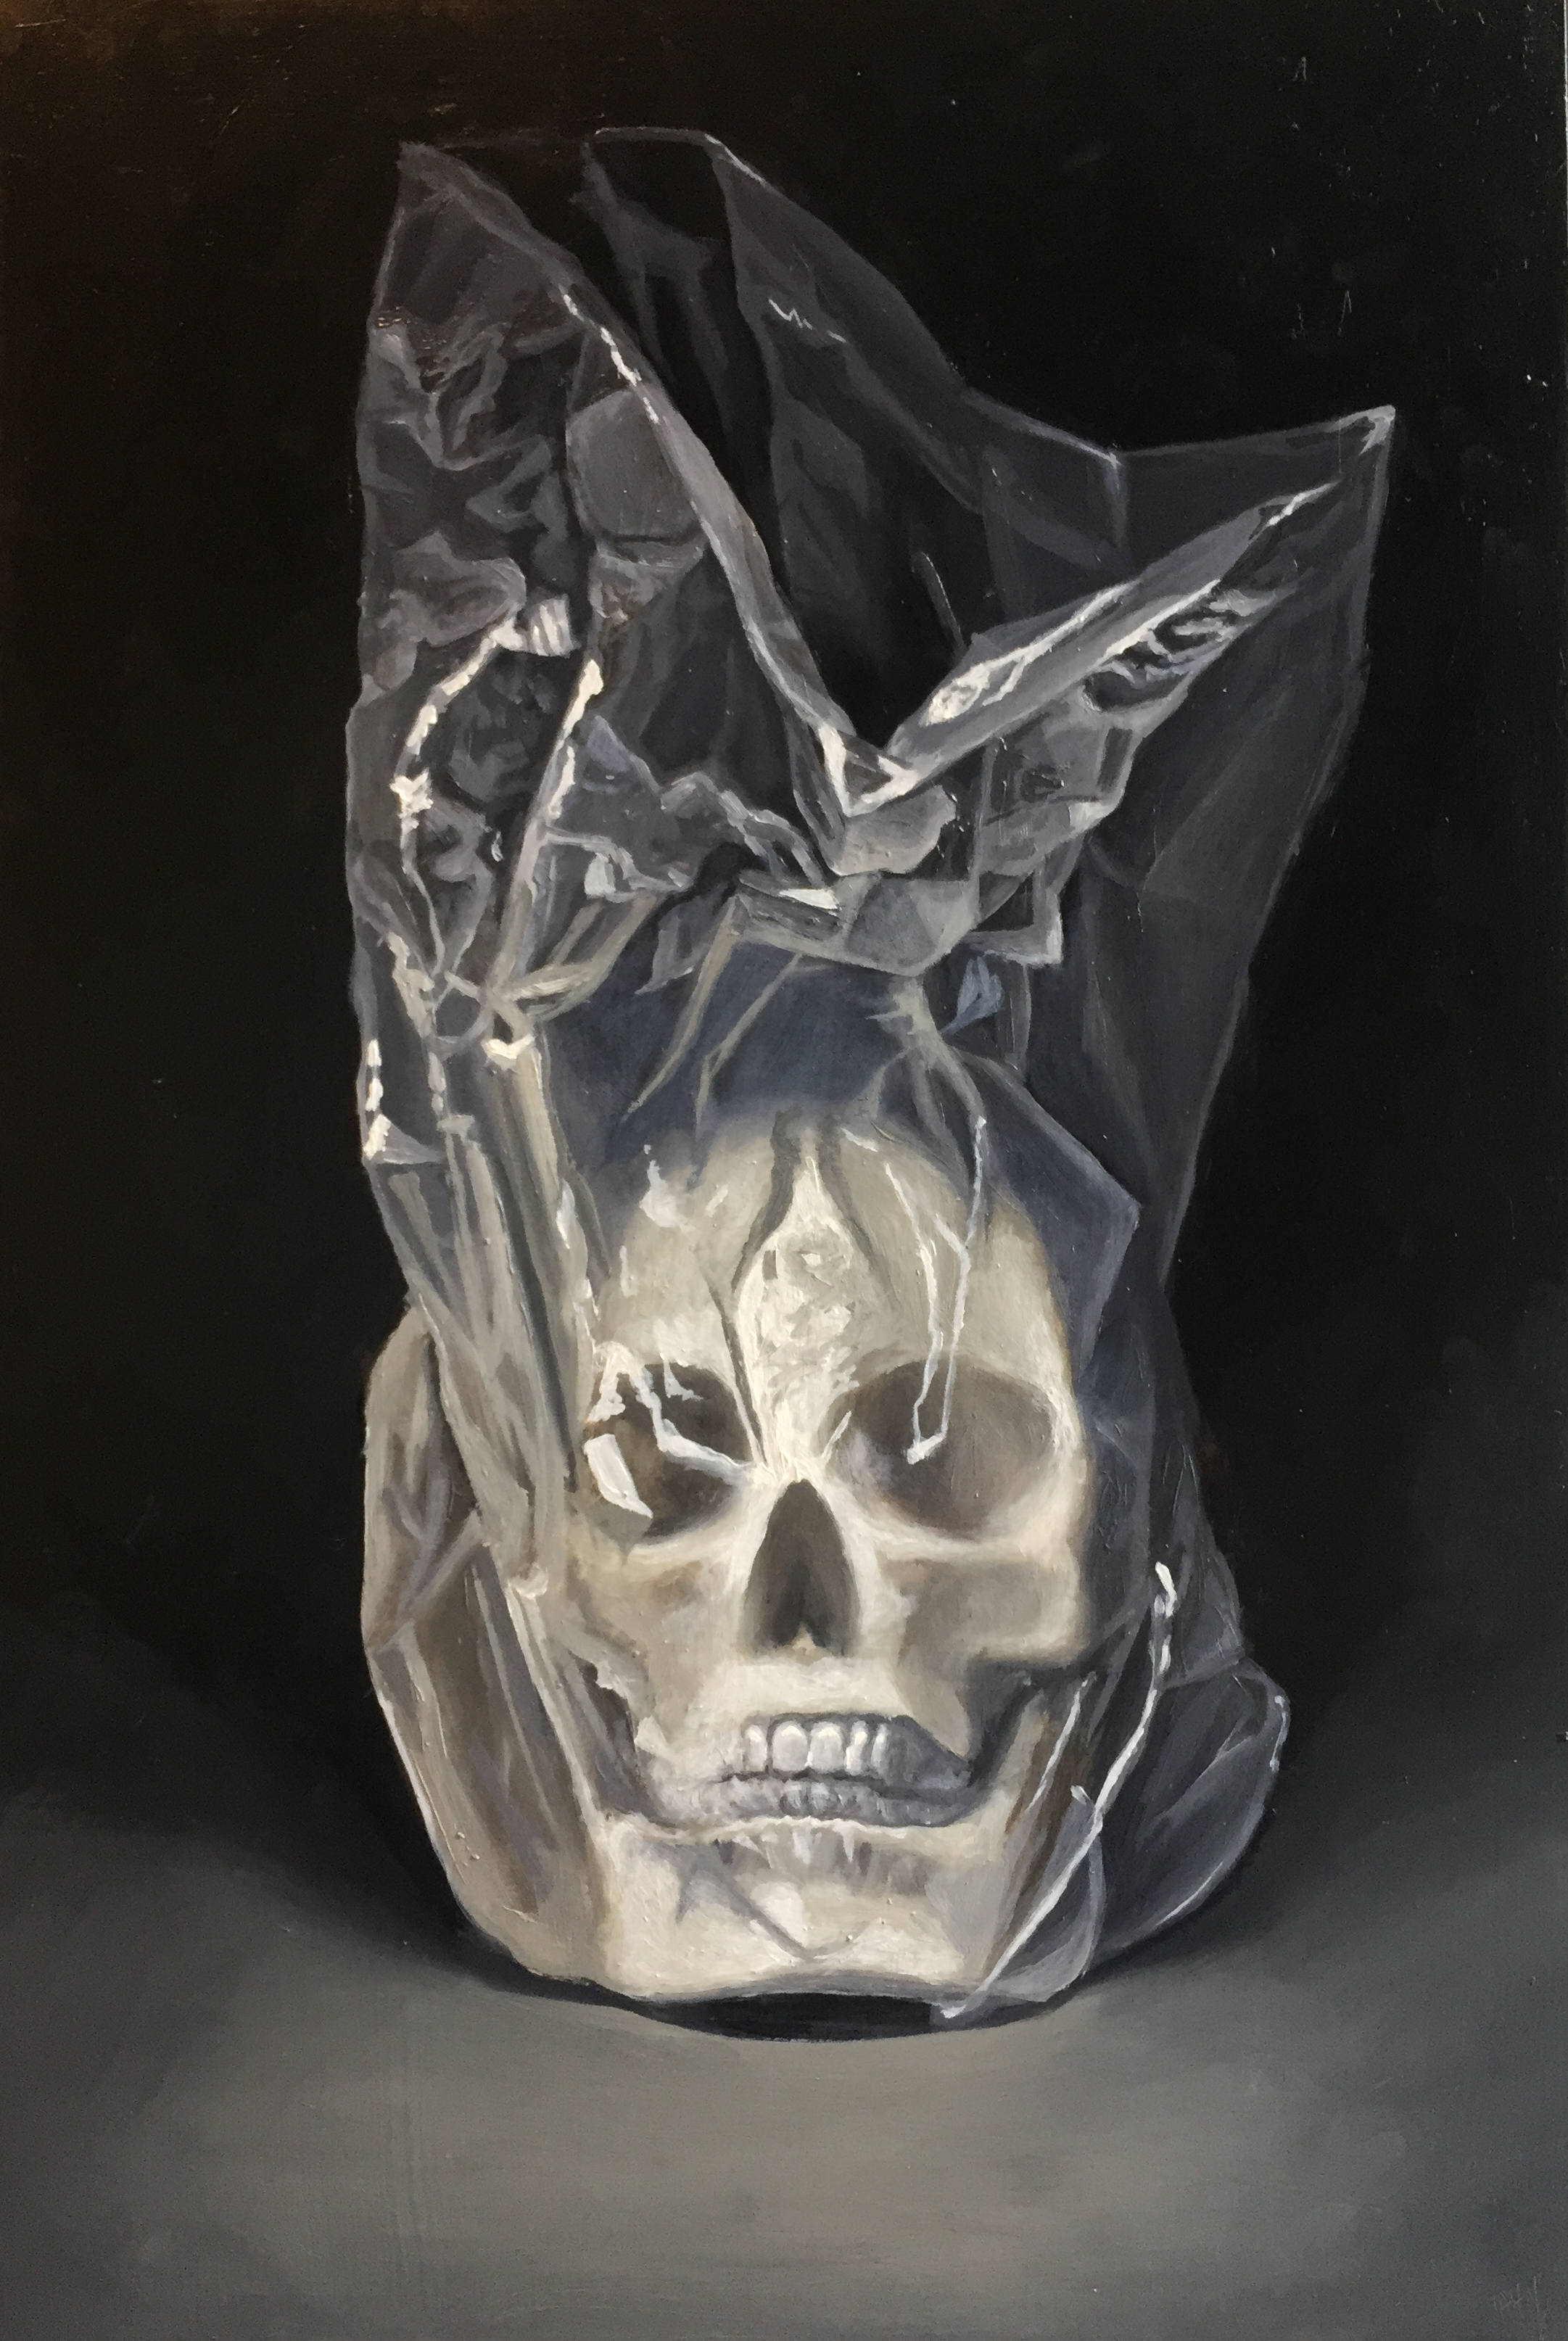 Skull in Plastic Bag